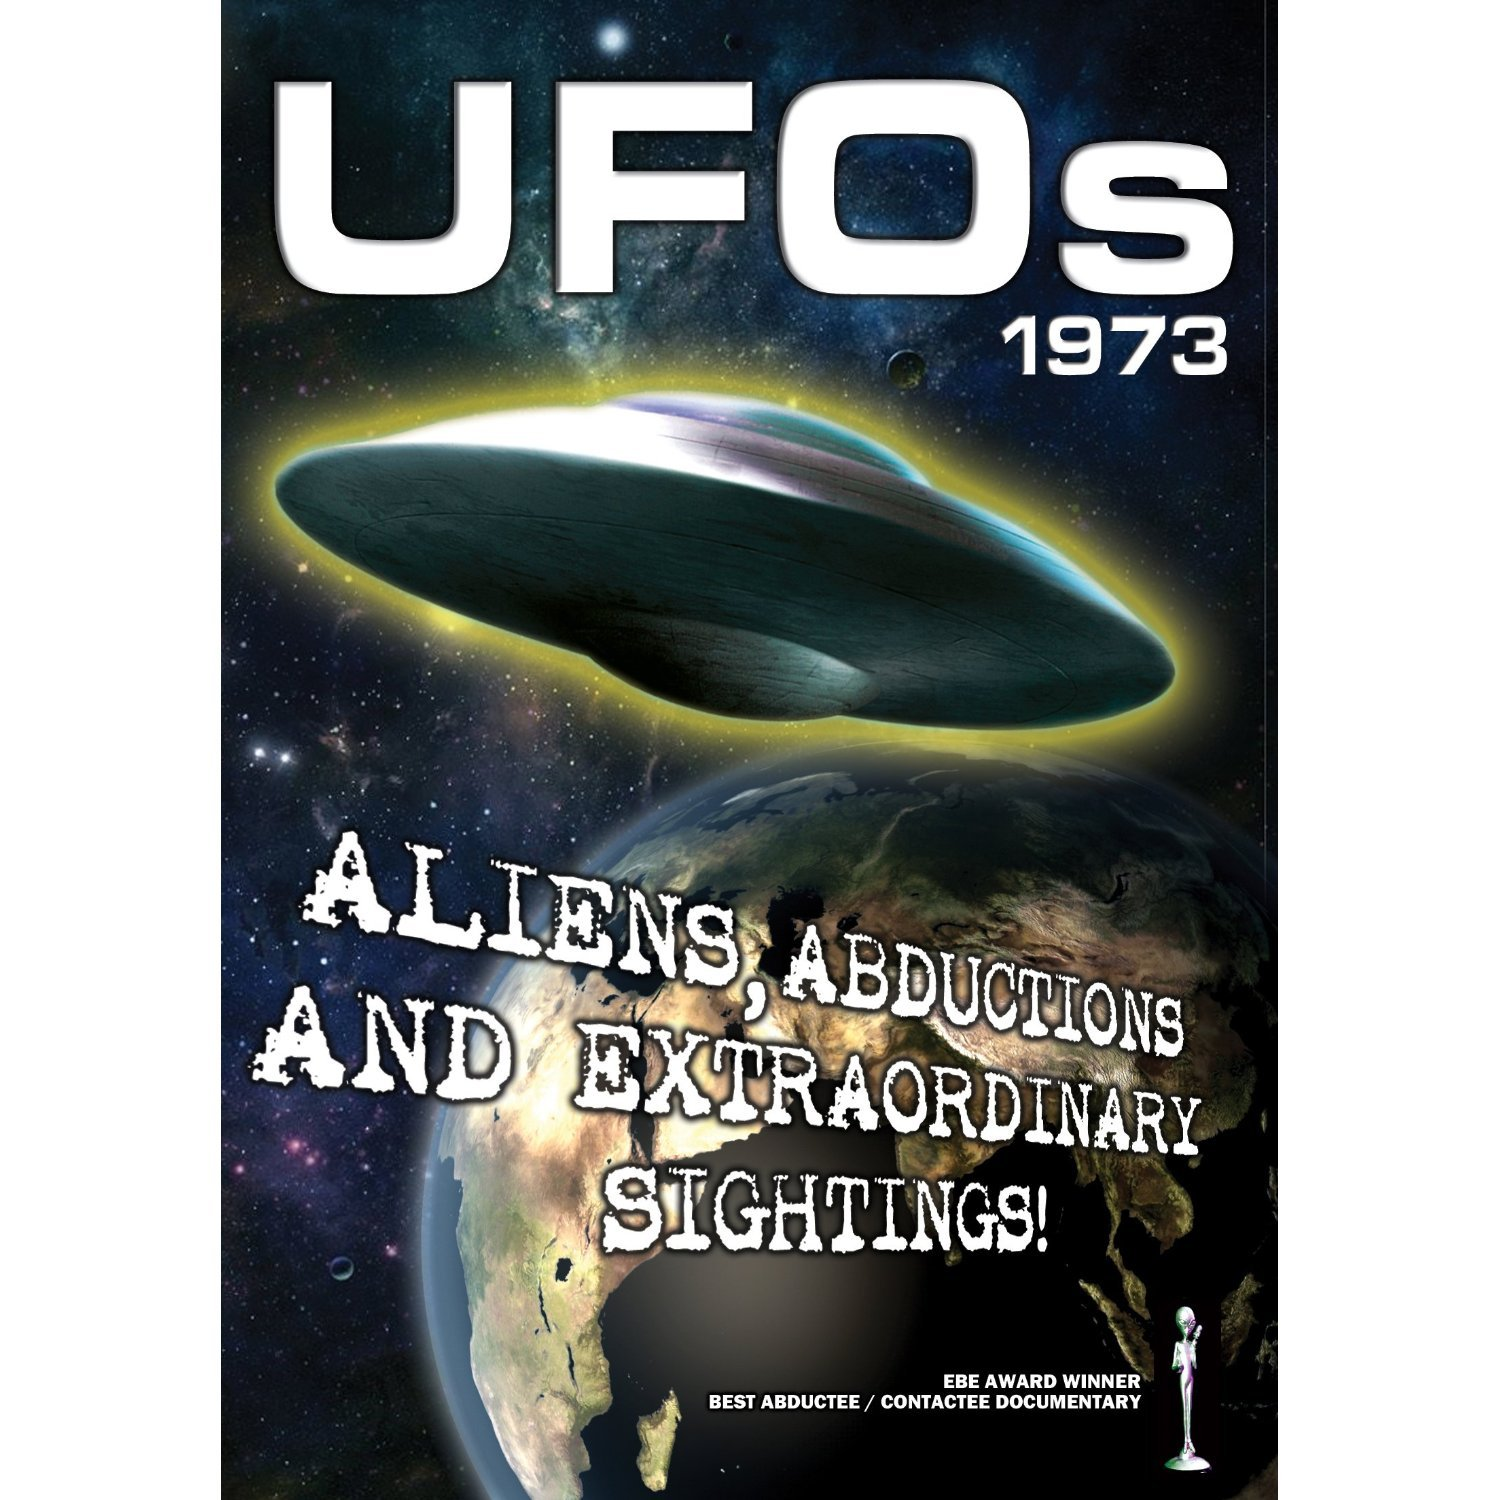 DVD : Tice Bune - Ufos 1973: Aliens, Abductions And Extraordinary Sightings (Full Frame)